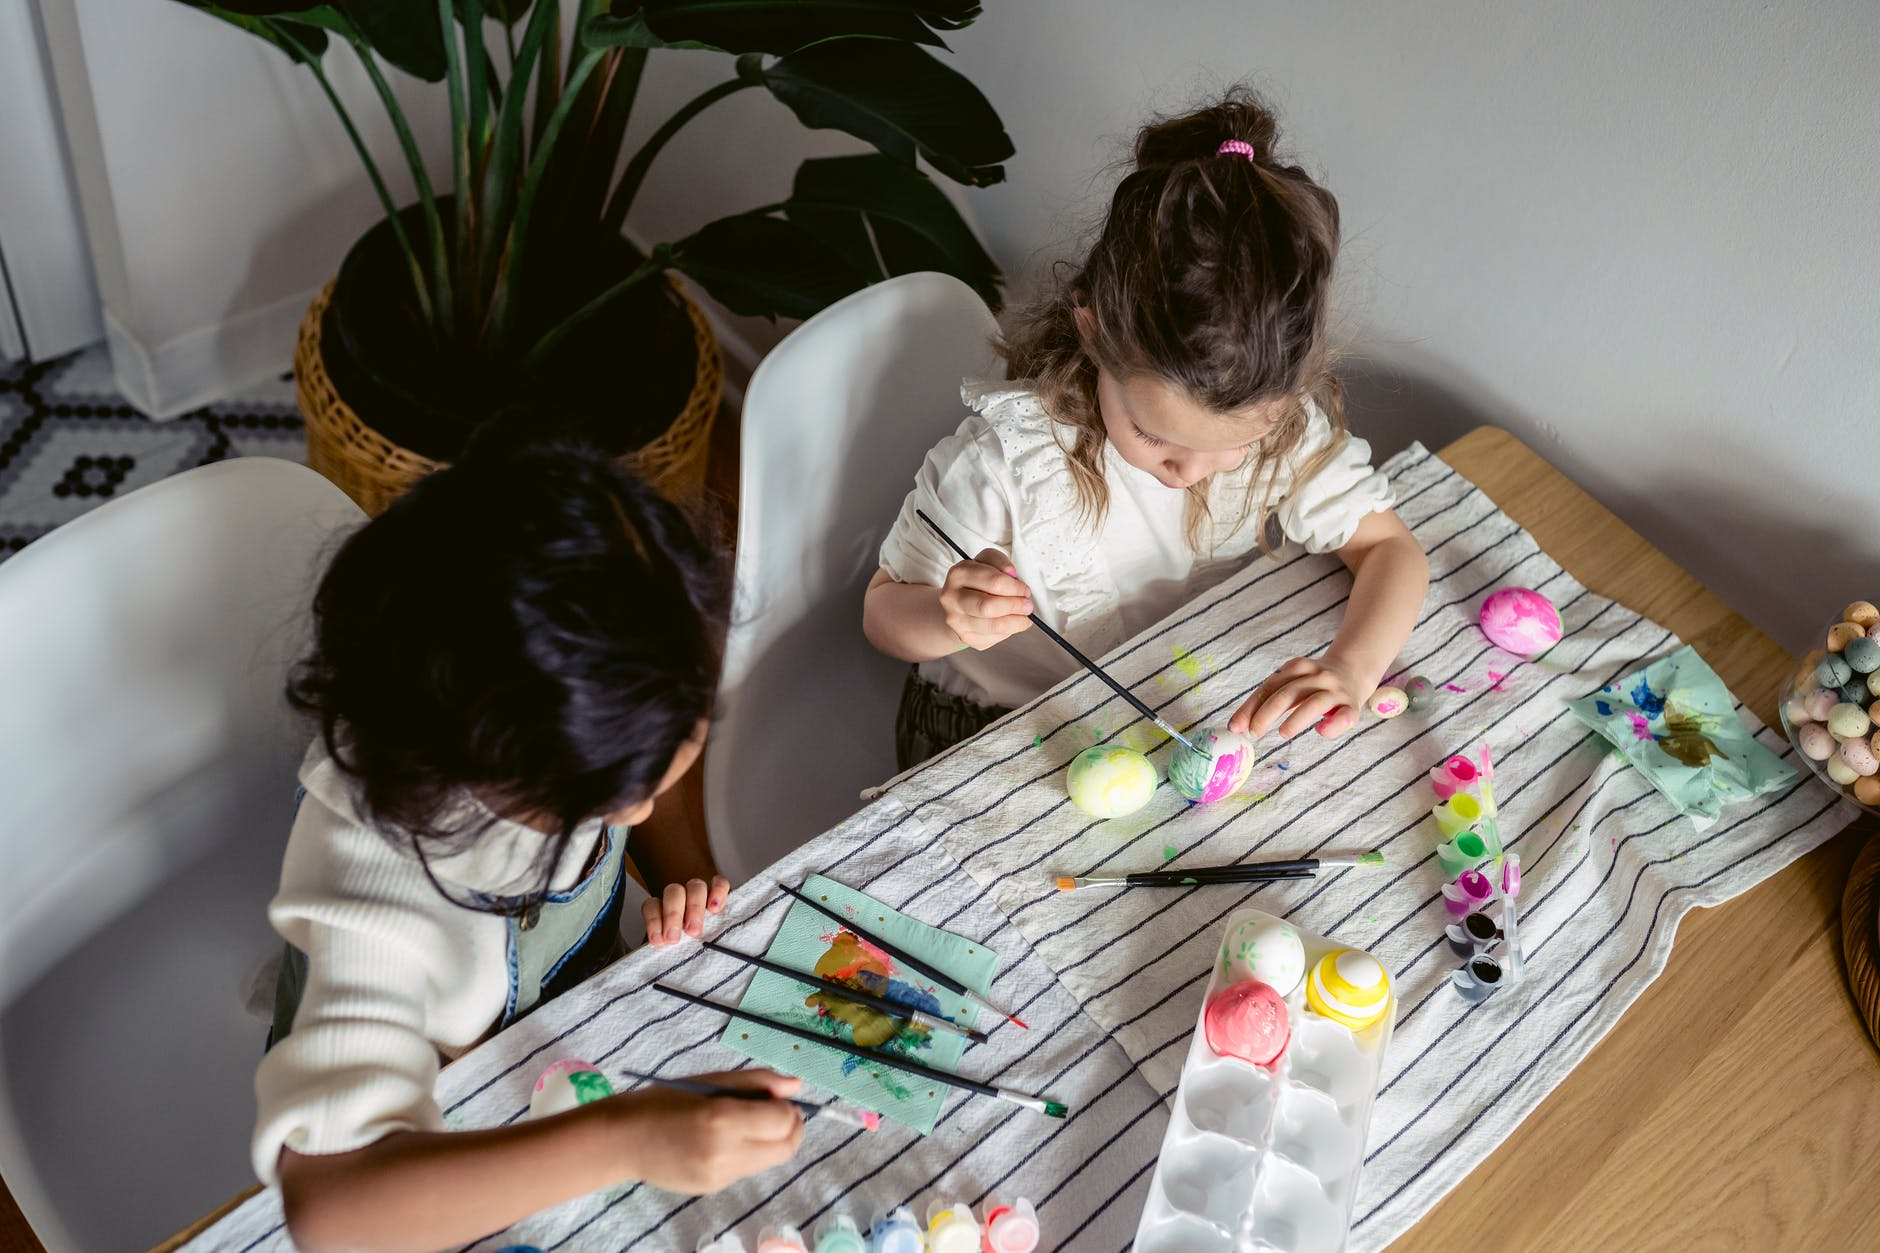 girls painting eggs on the table